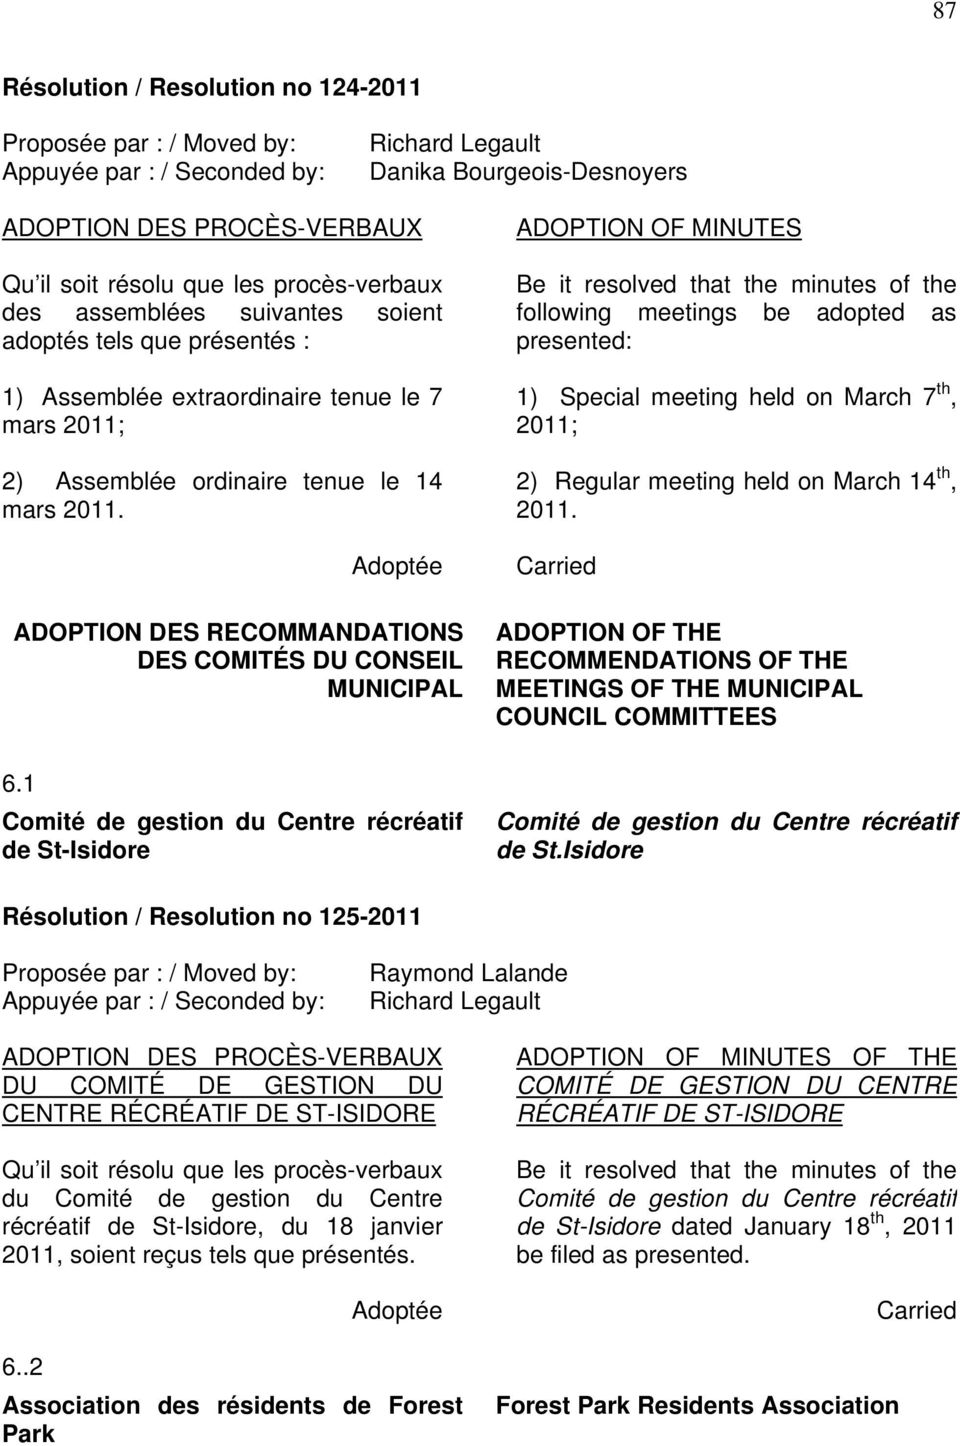 1 Comité de gestion du Centre récréatif de St-Isidore ADOPTION OF MINUTES Be it resolved that the minutes of the following meetings be adopted as presented: 1) Special meeting held on March 7 th,